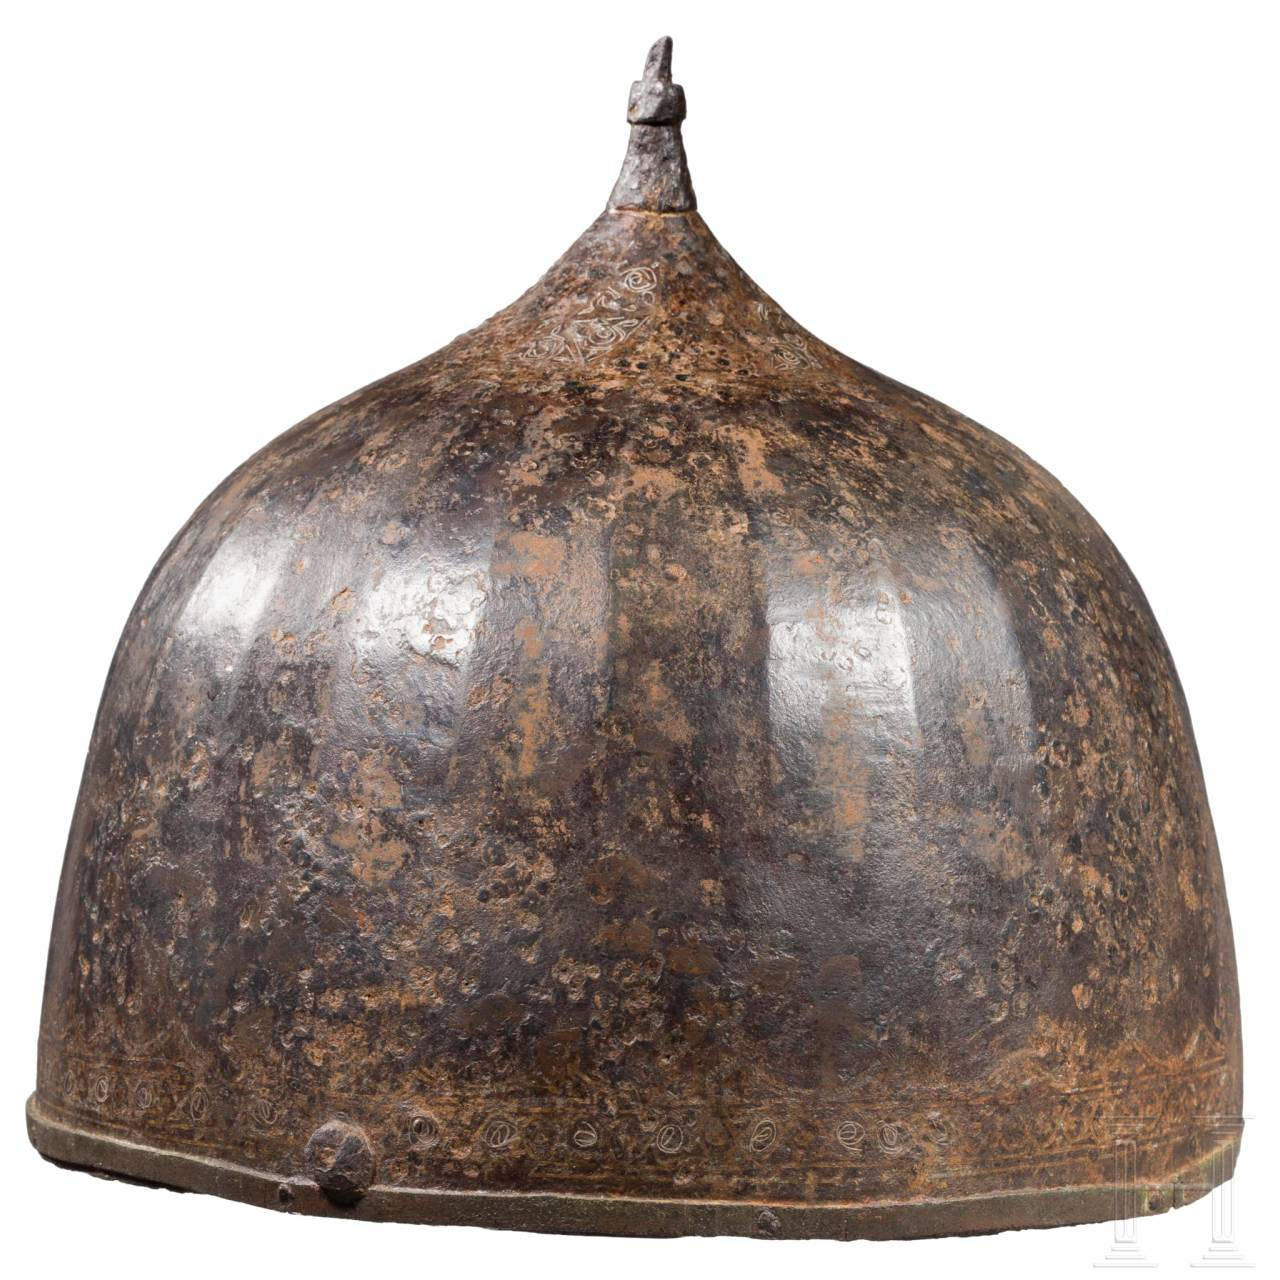 A Russian iron helmet with silver inlays, 15th - 16th century